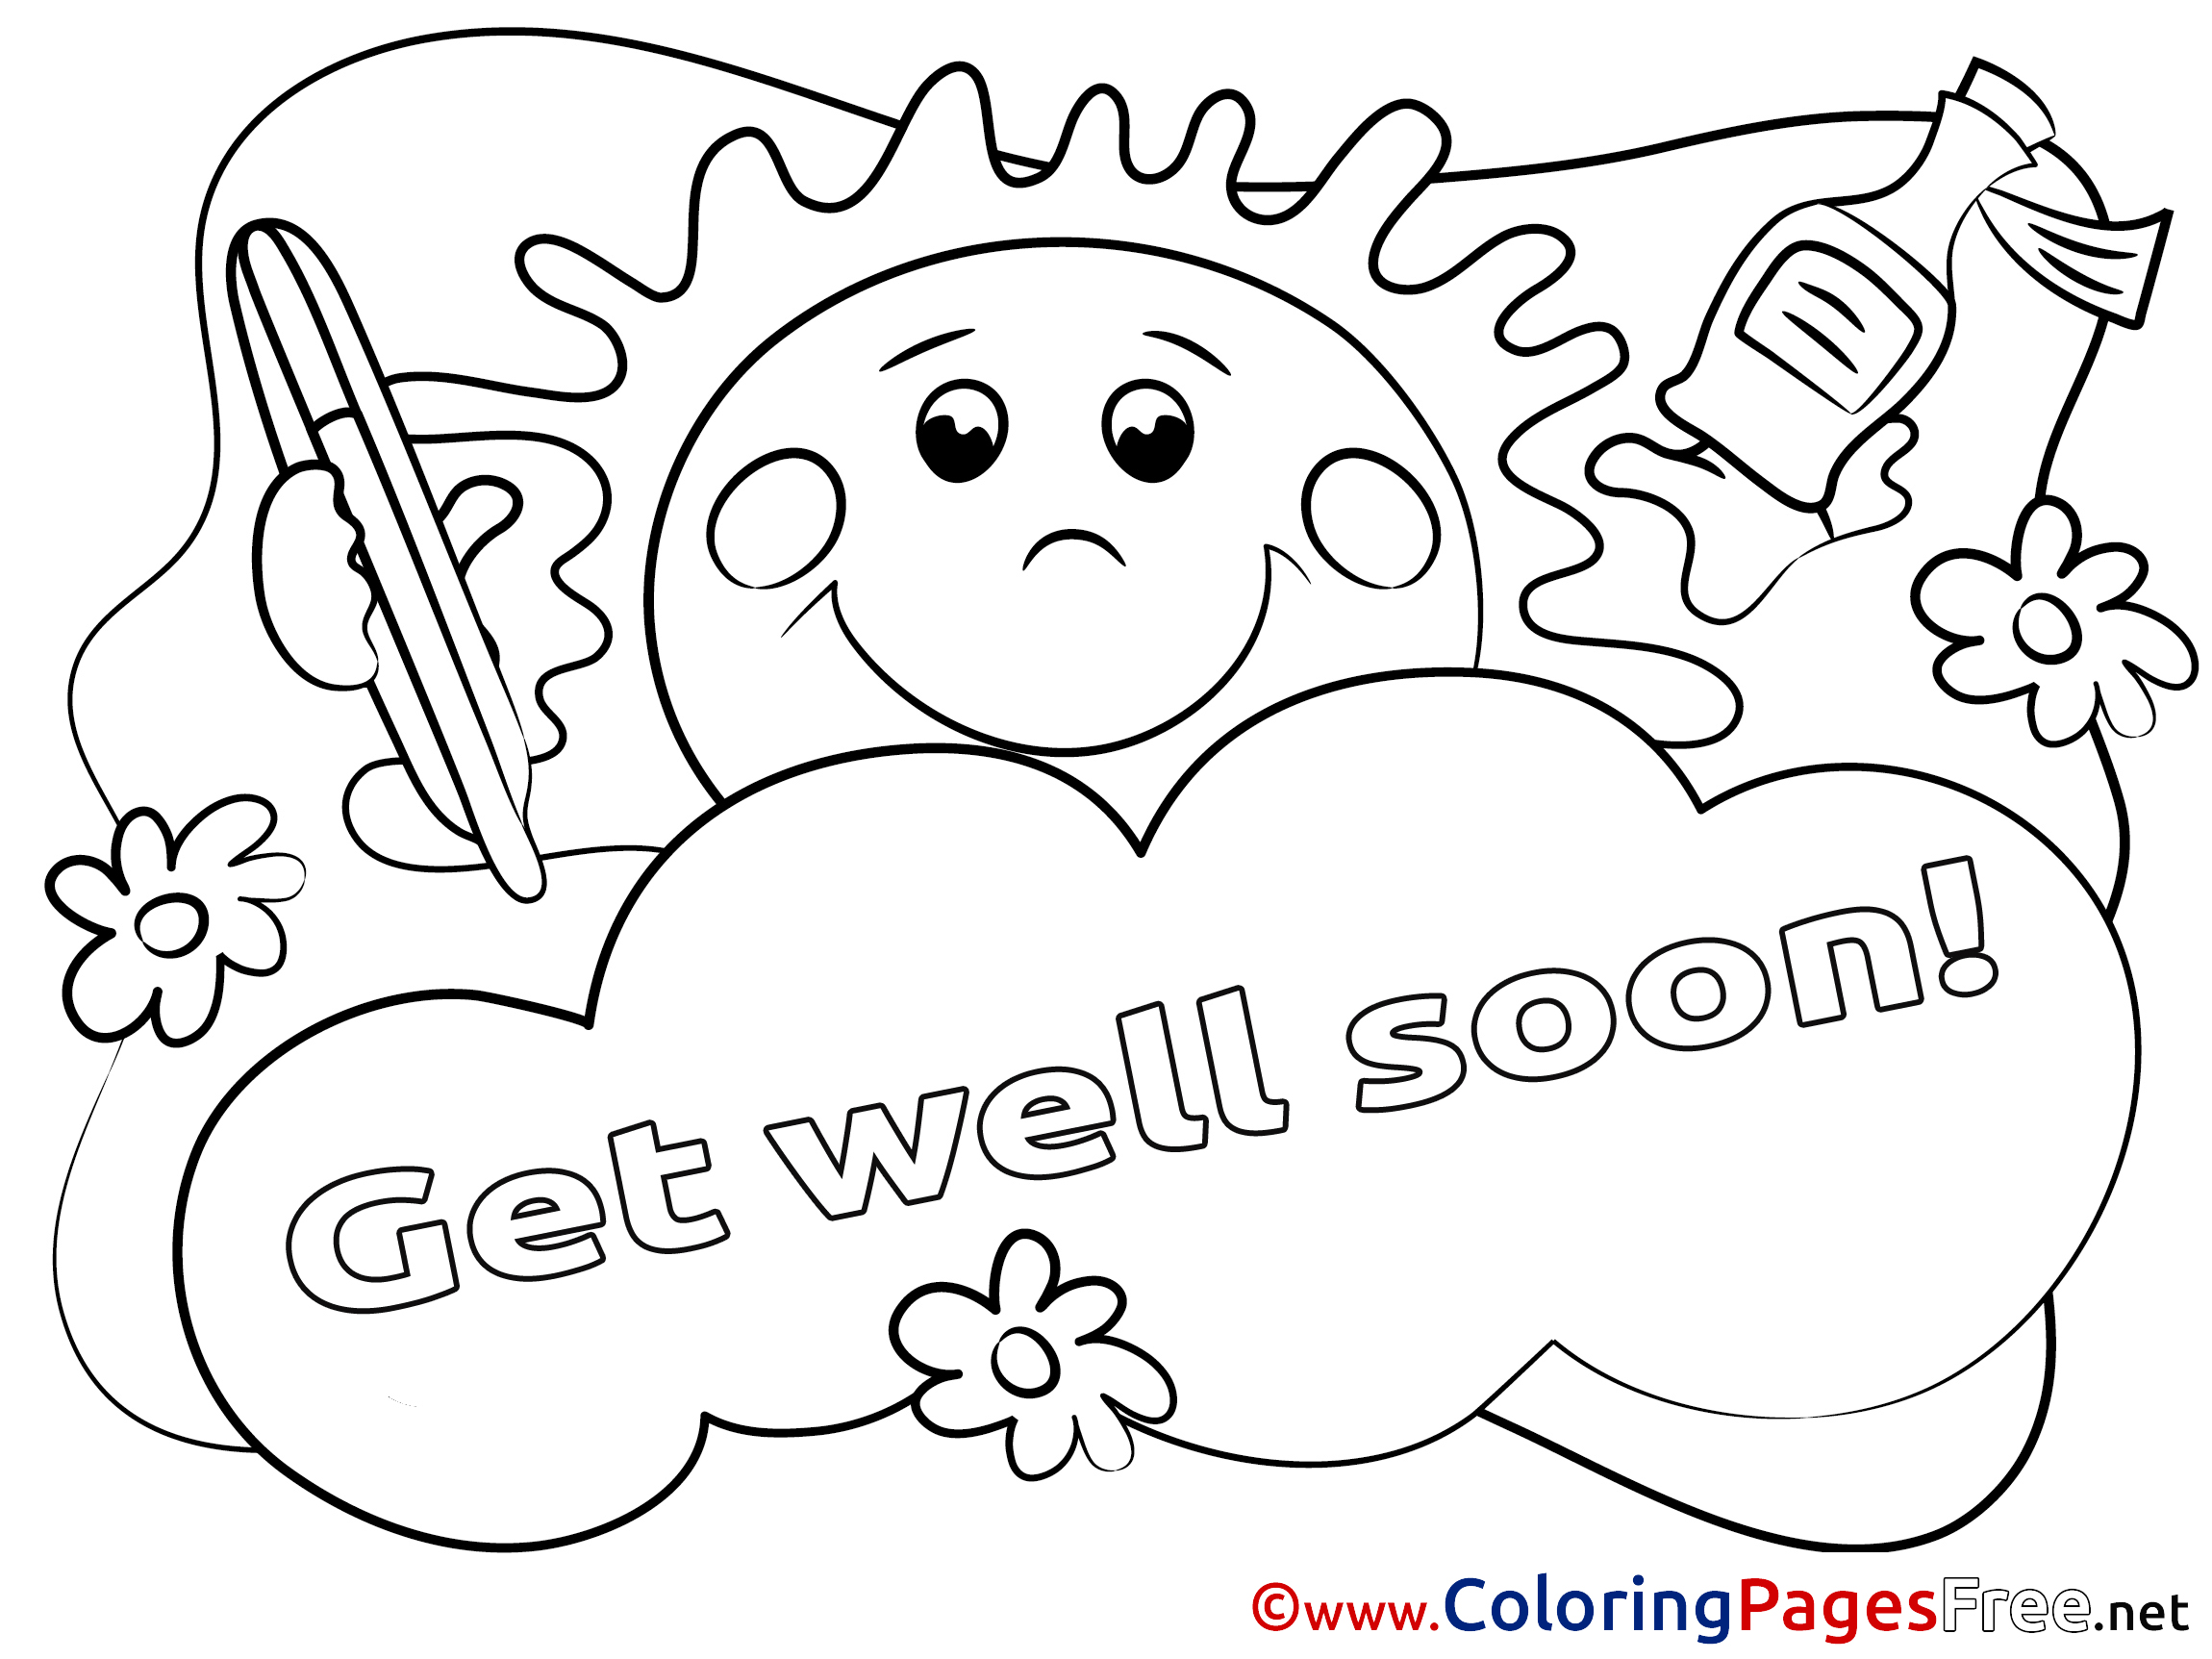 Sun for Kids Get well soon Colouring Page